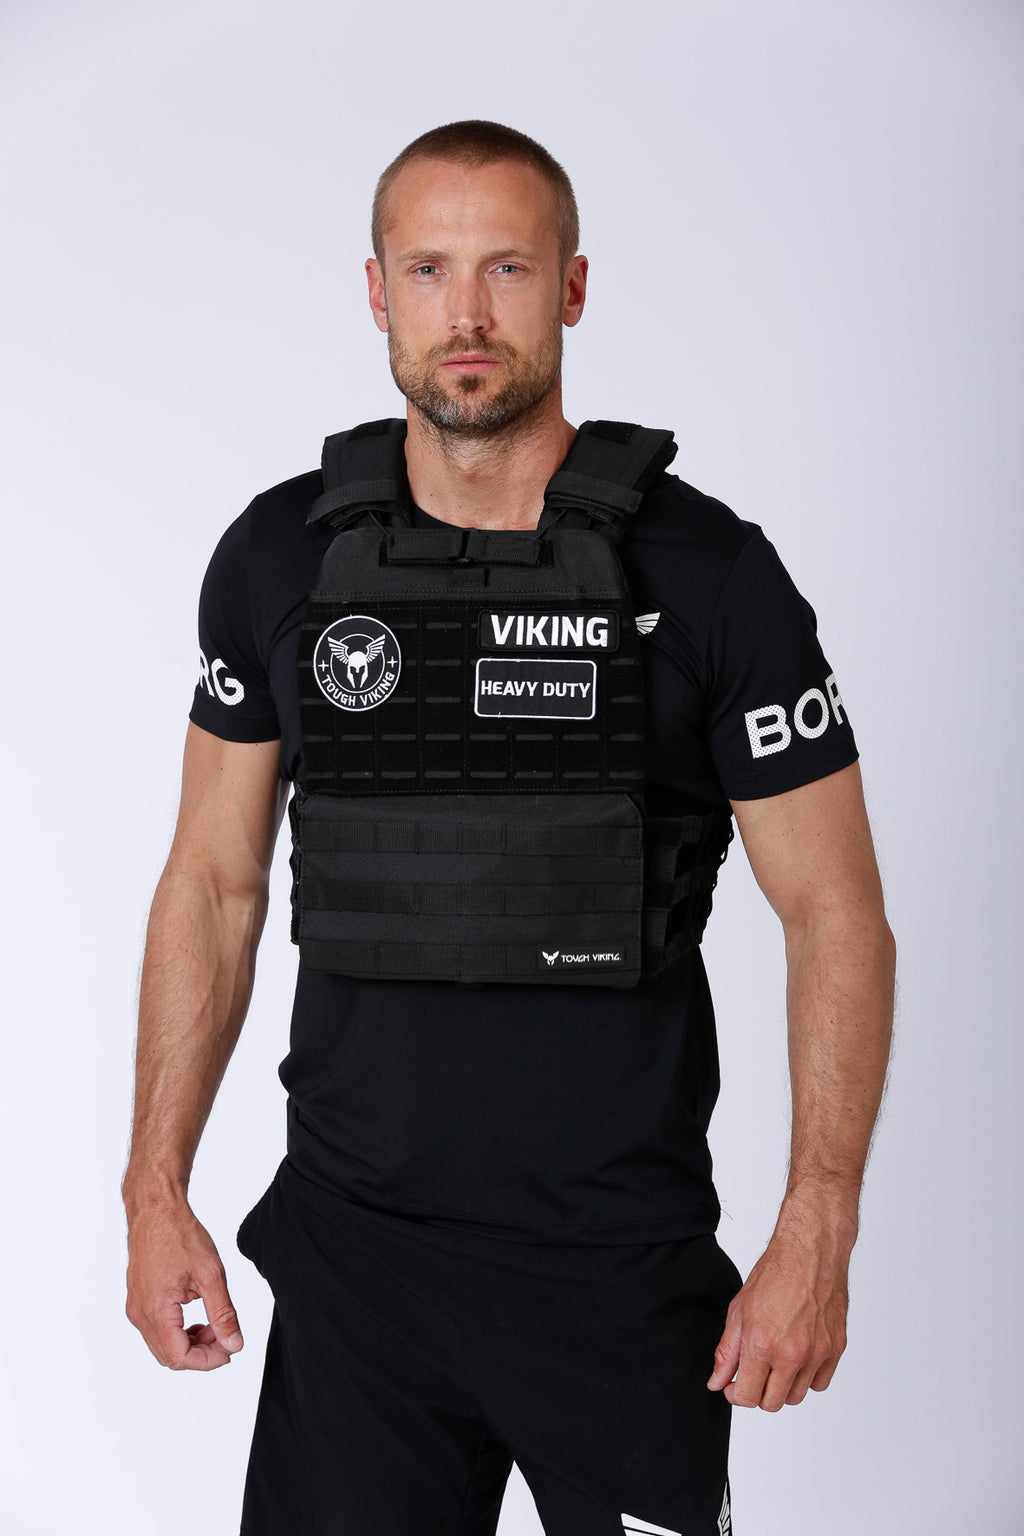 Tough Viking Heavy Duty Weight Vest - Black